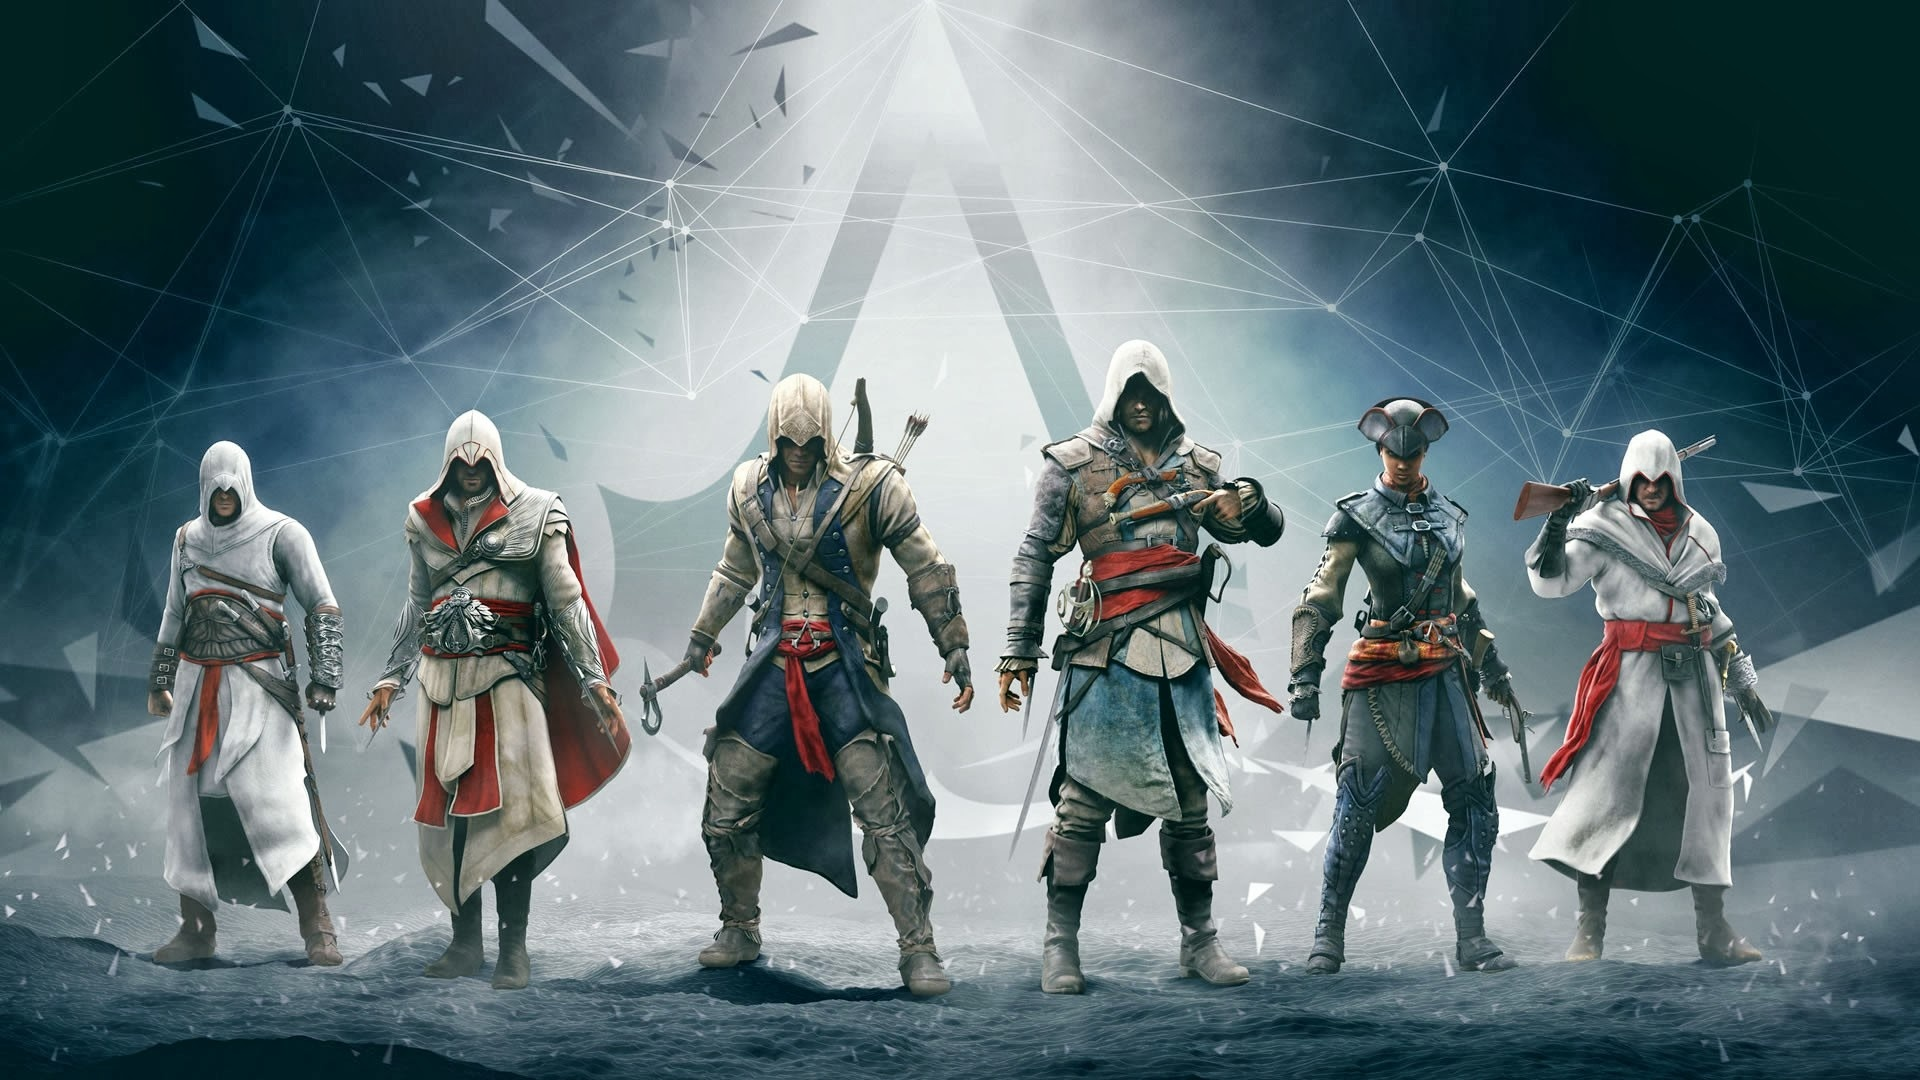 Assassin's Creed Wallpaper 1920x1080 - WallpaperSafari